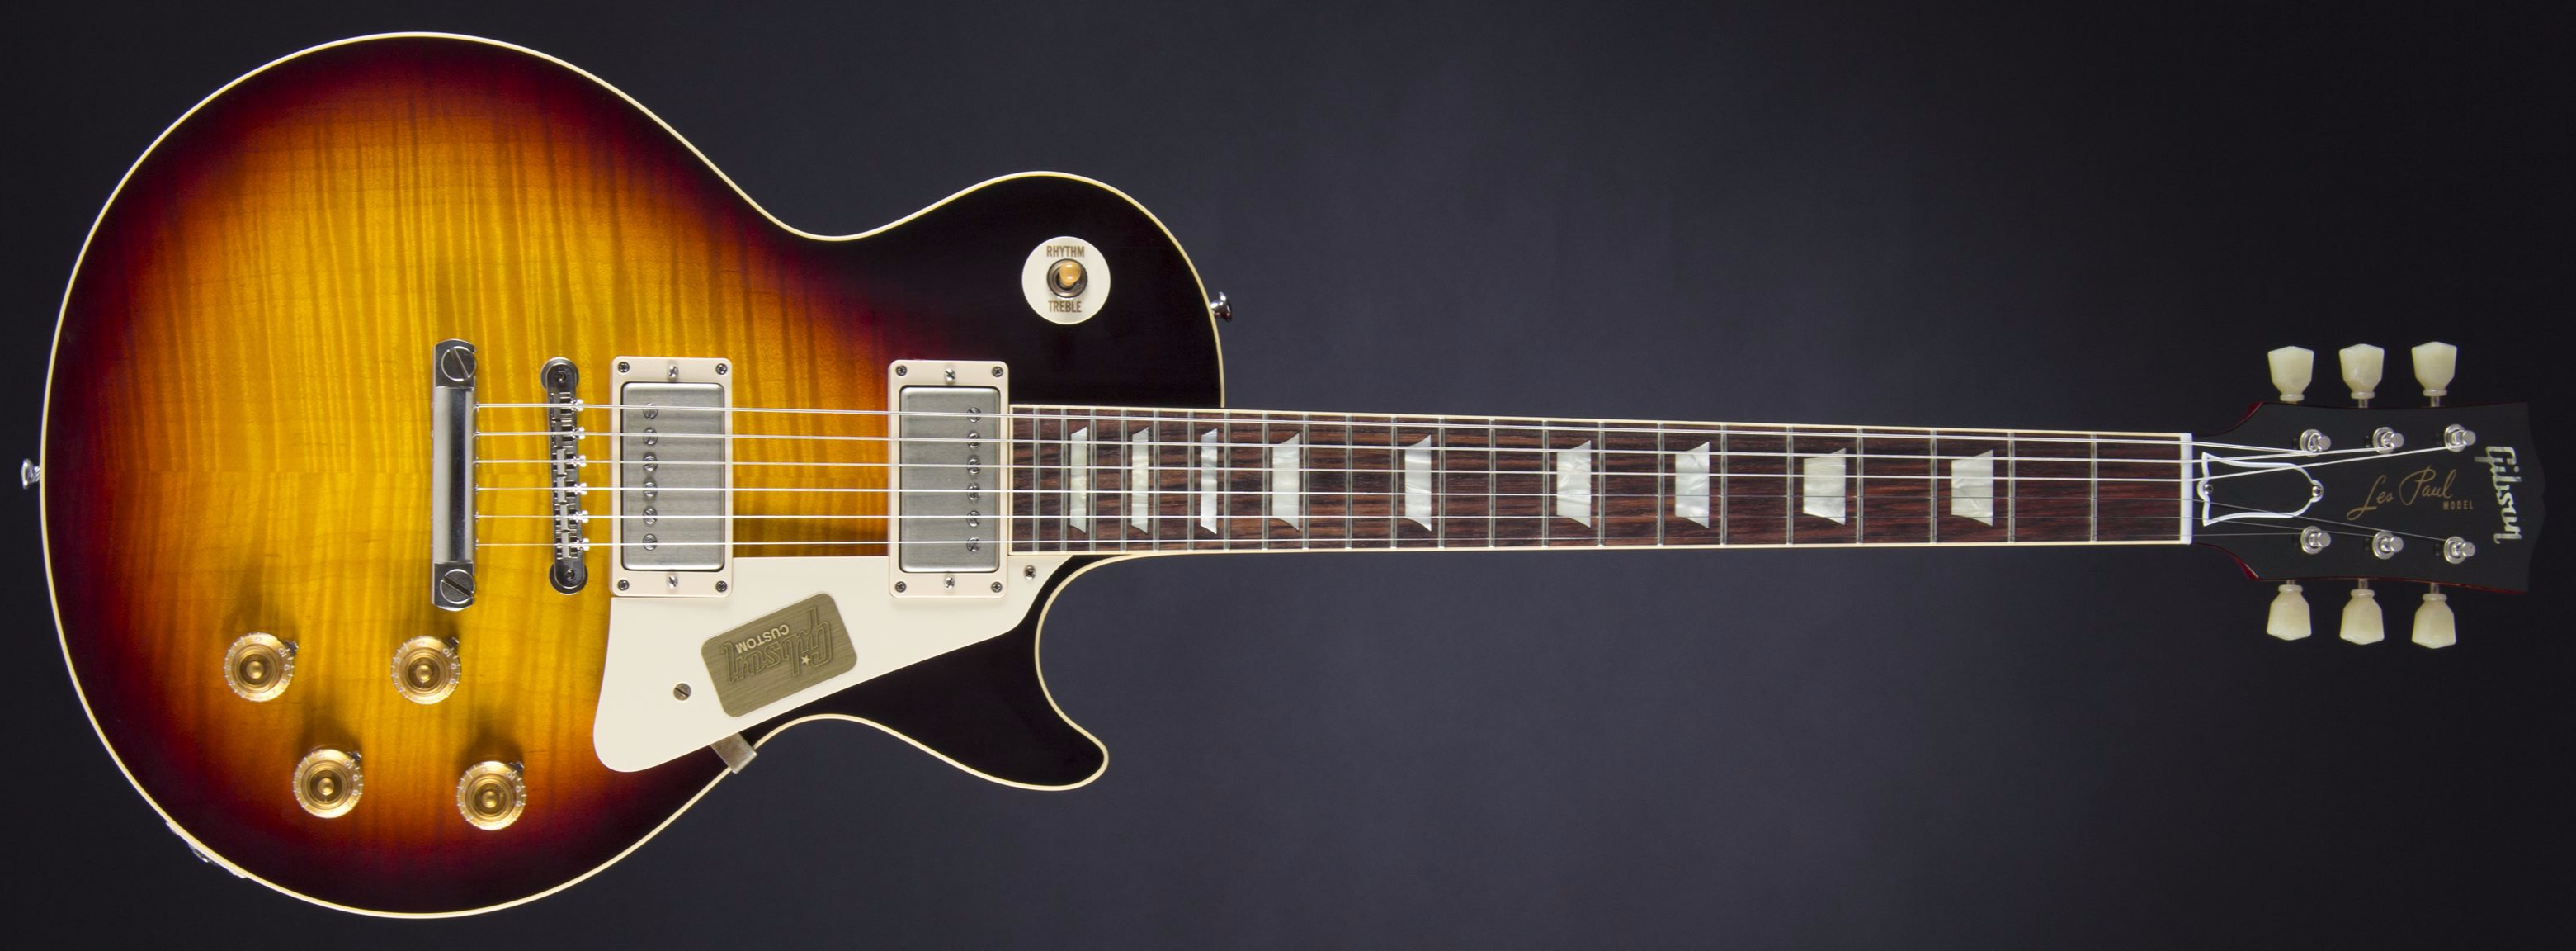 GIBSON CS9 Les Paul Faded Tobacco